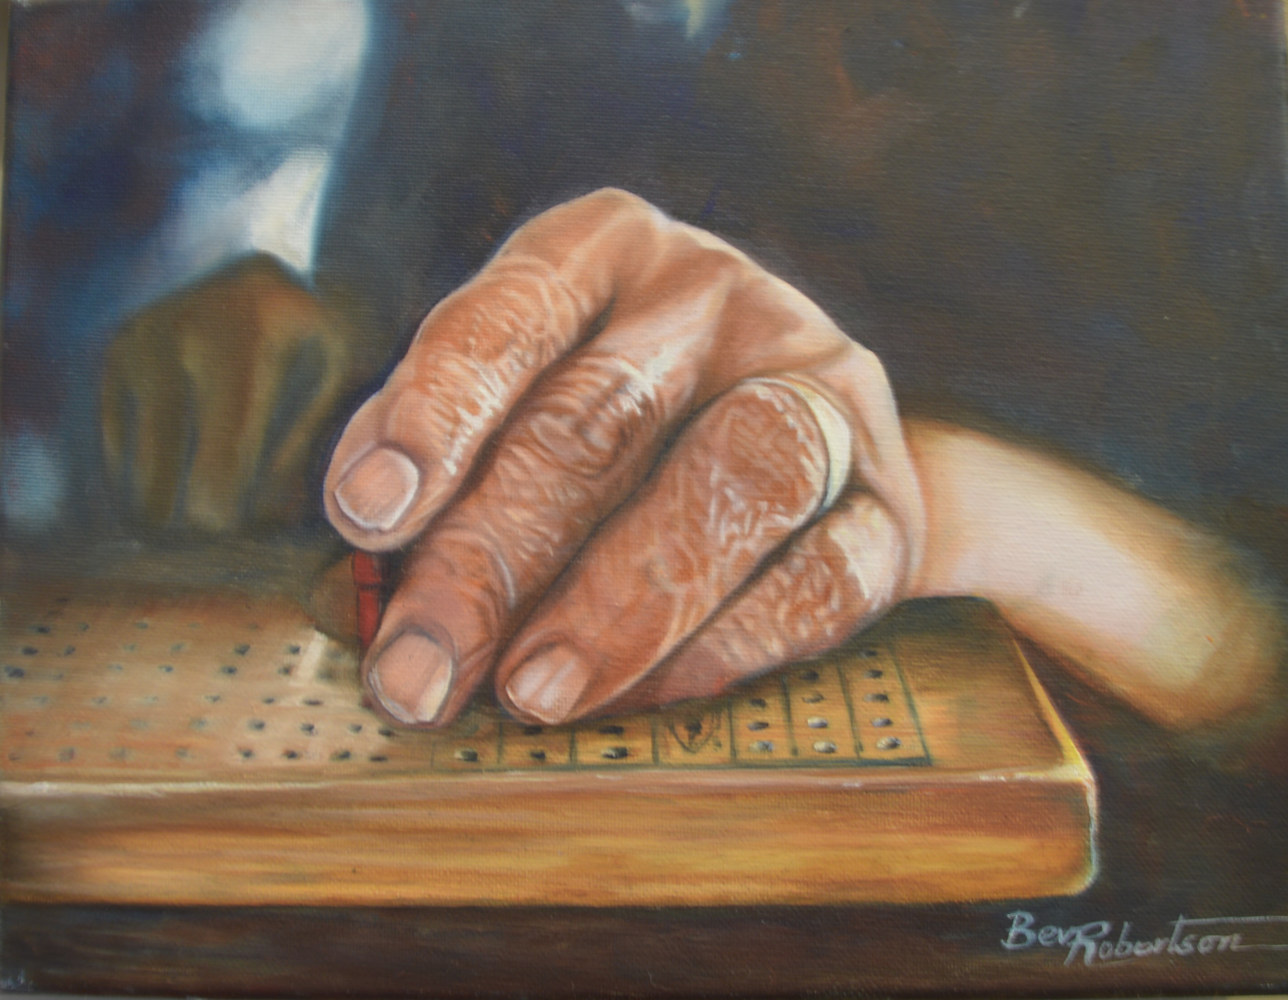 Another Hand Dealt in an Ageless Game by Bev Robertson